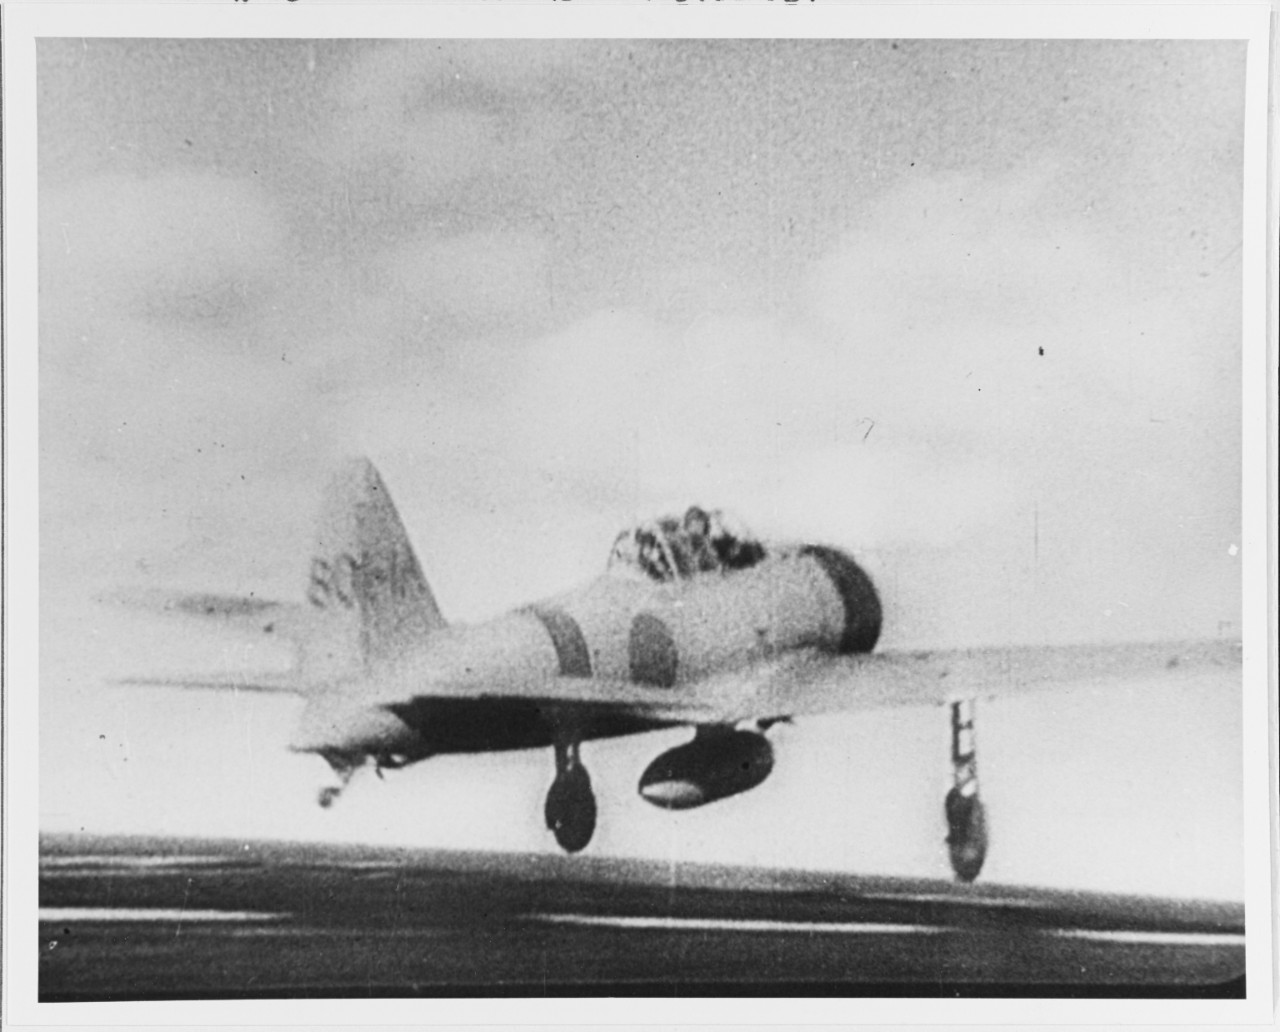 Photo #: 80-G-182252  Pearl Harbor Attack, 7 December 1941